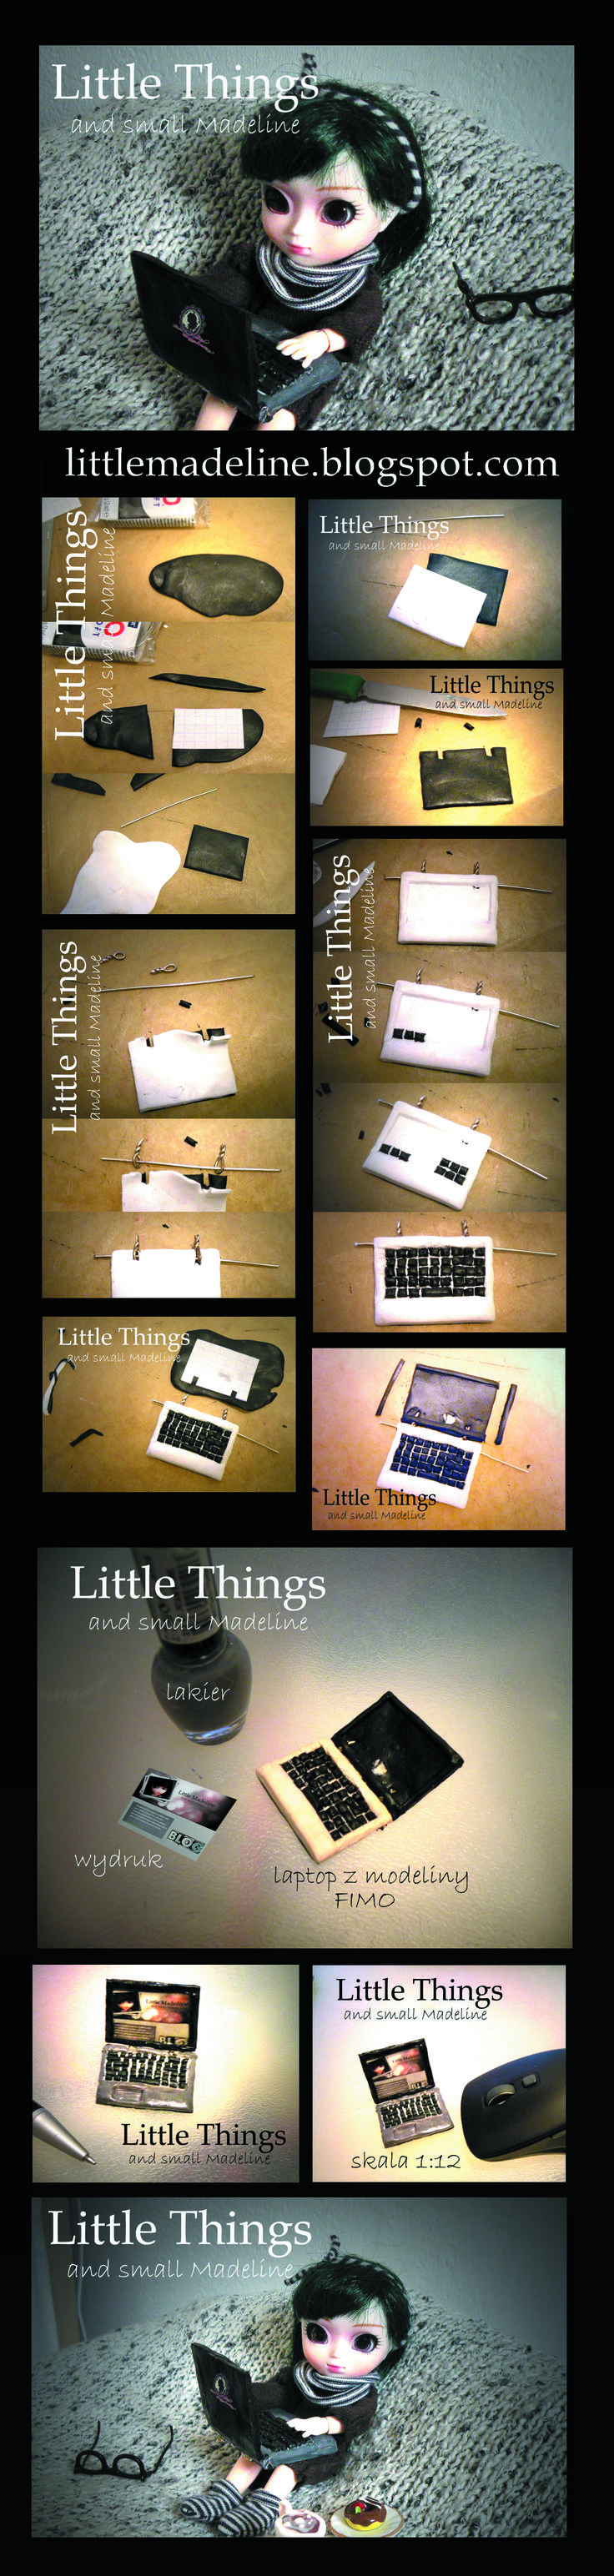 miniarure -laptop for little pullip doll